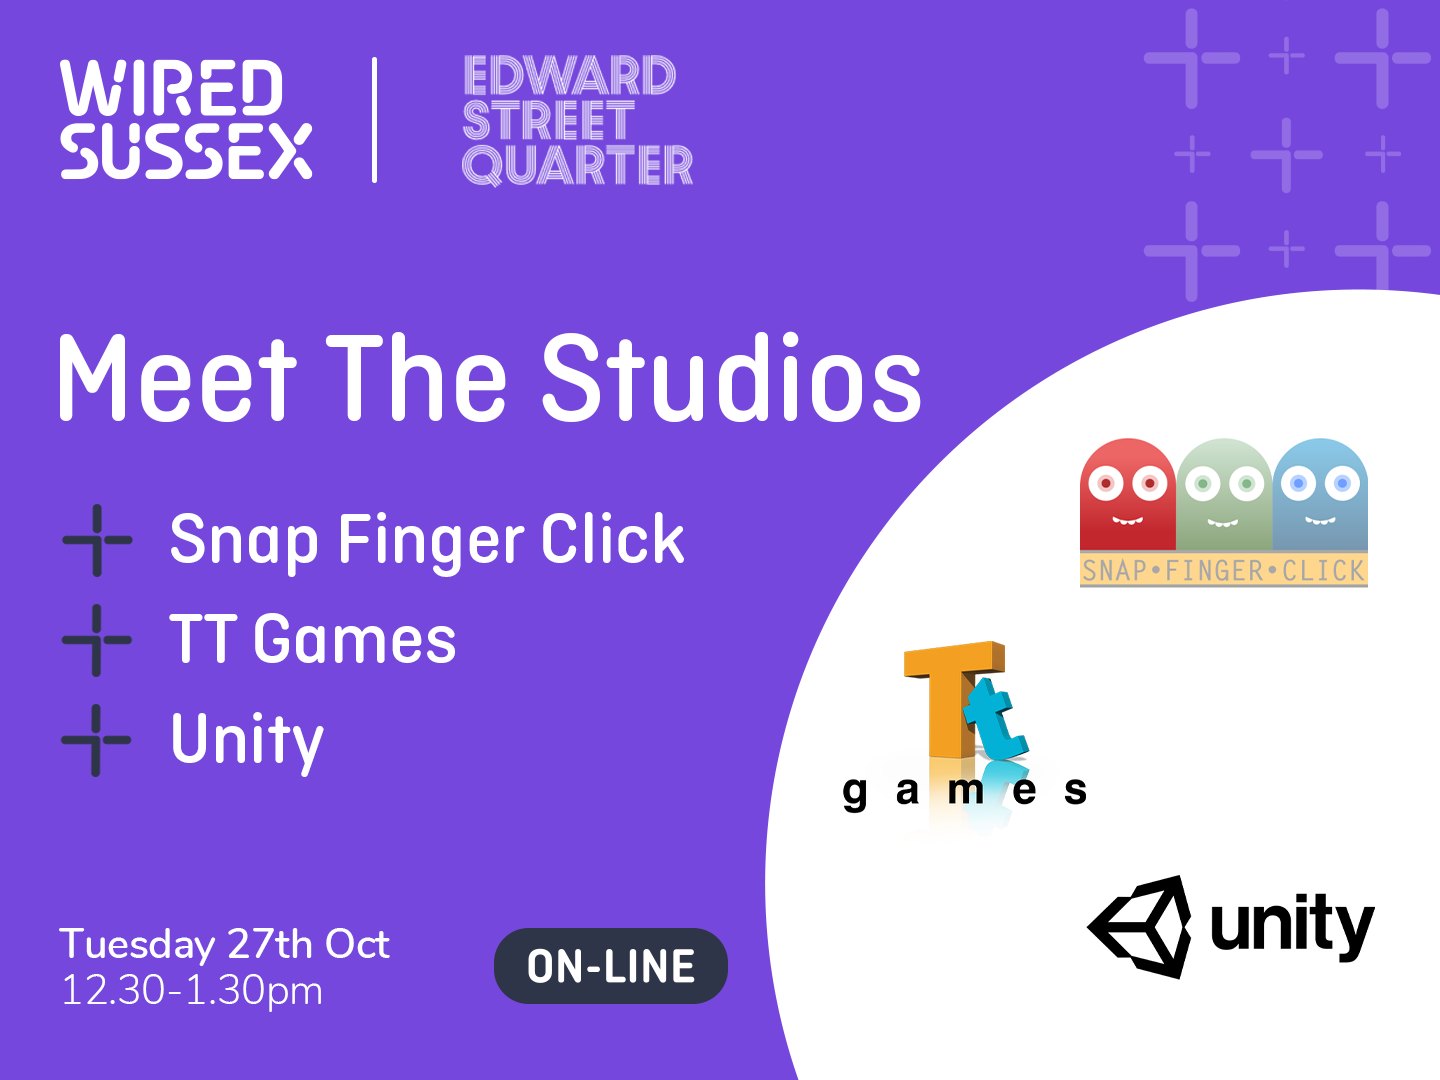 Meet The Studios: Snap Finger Click, TT Games & Unity